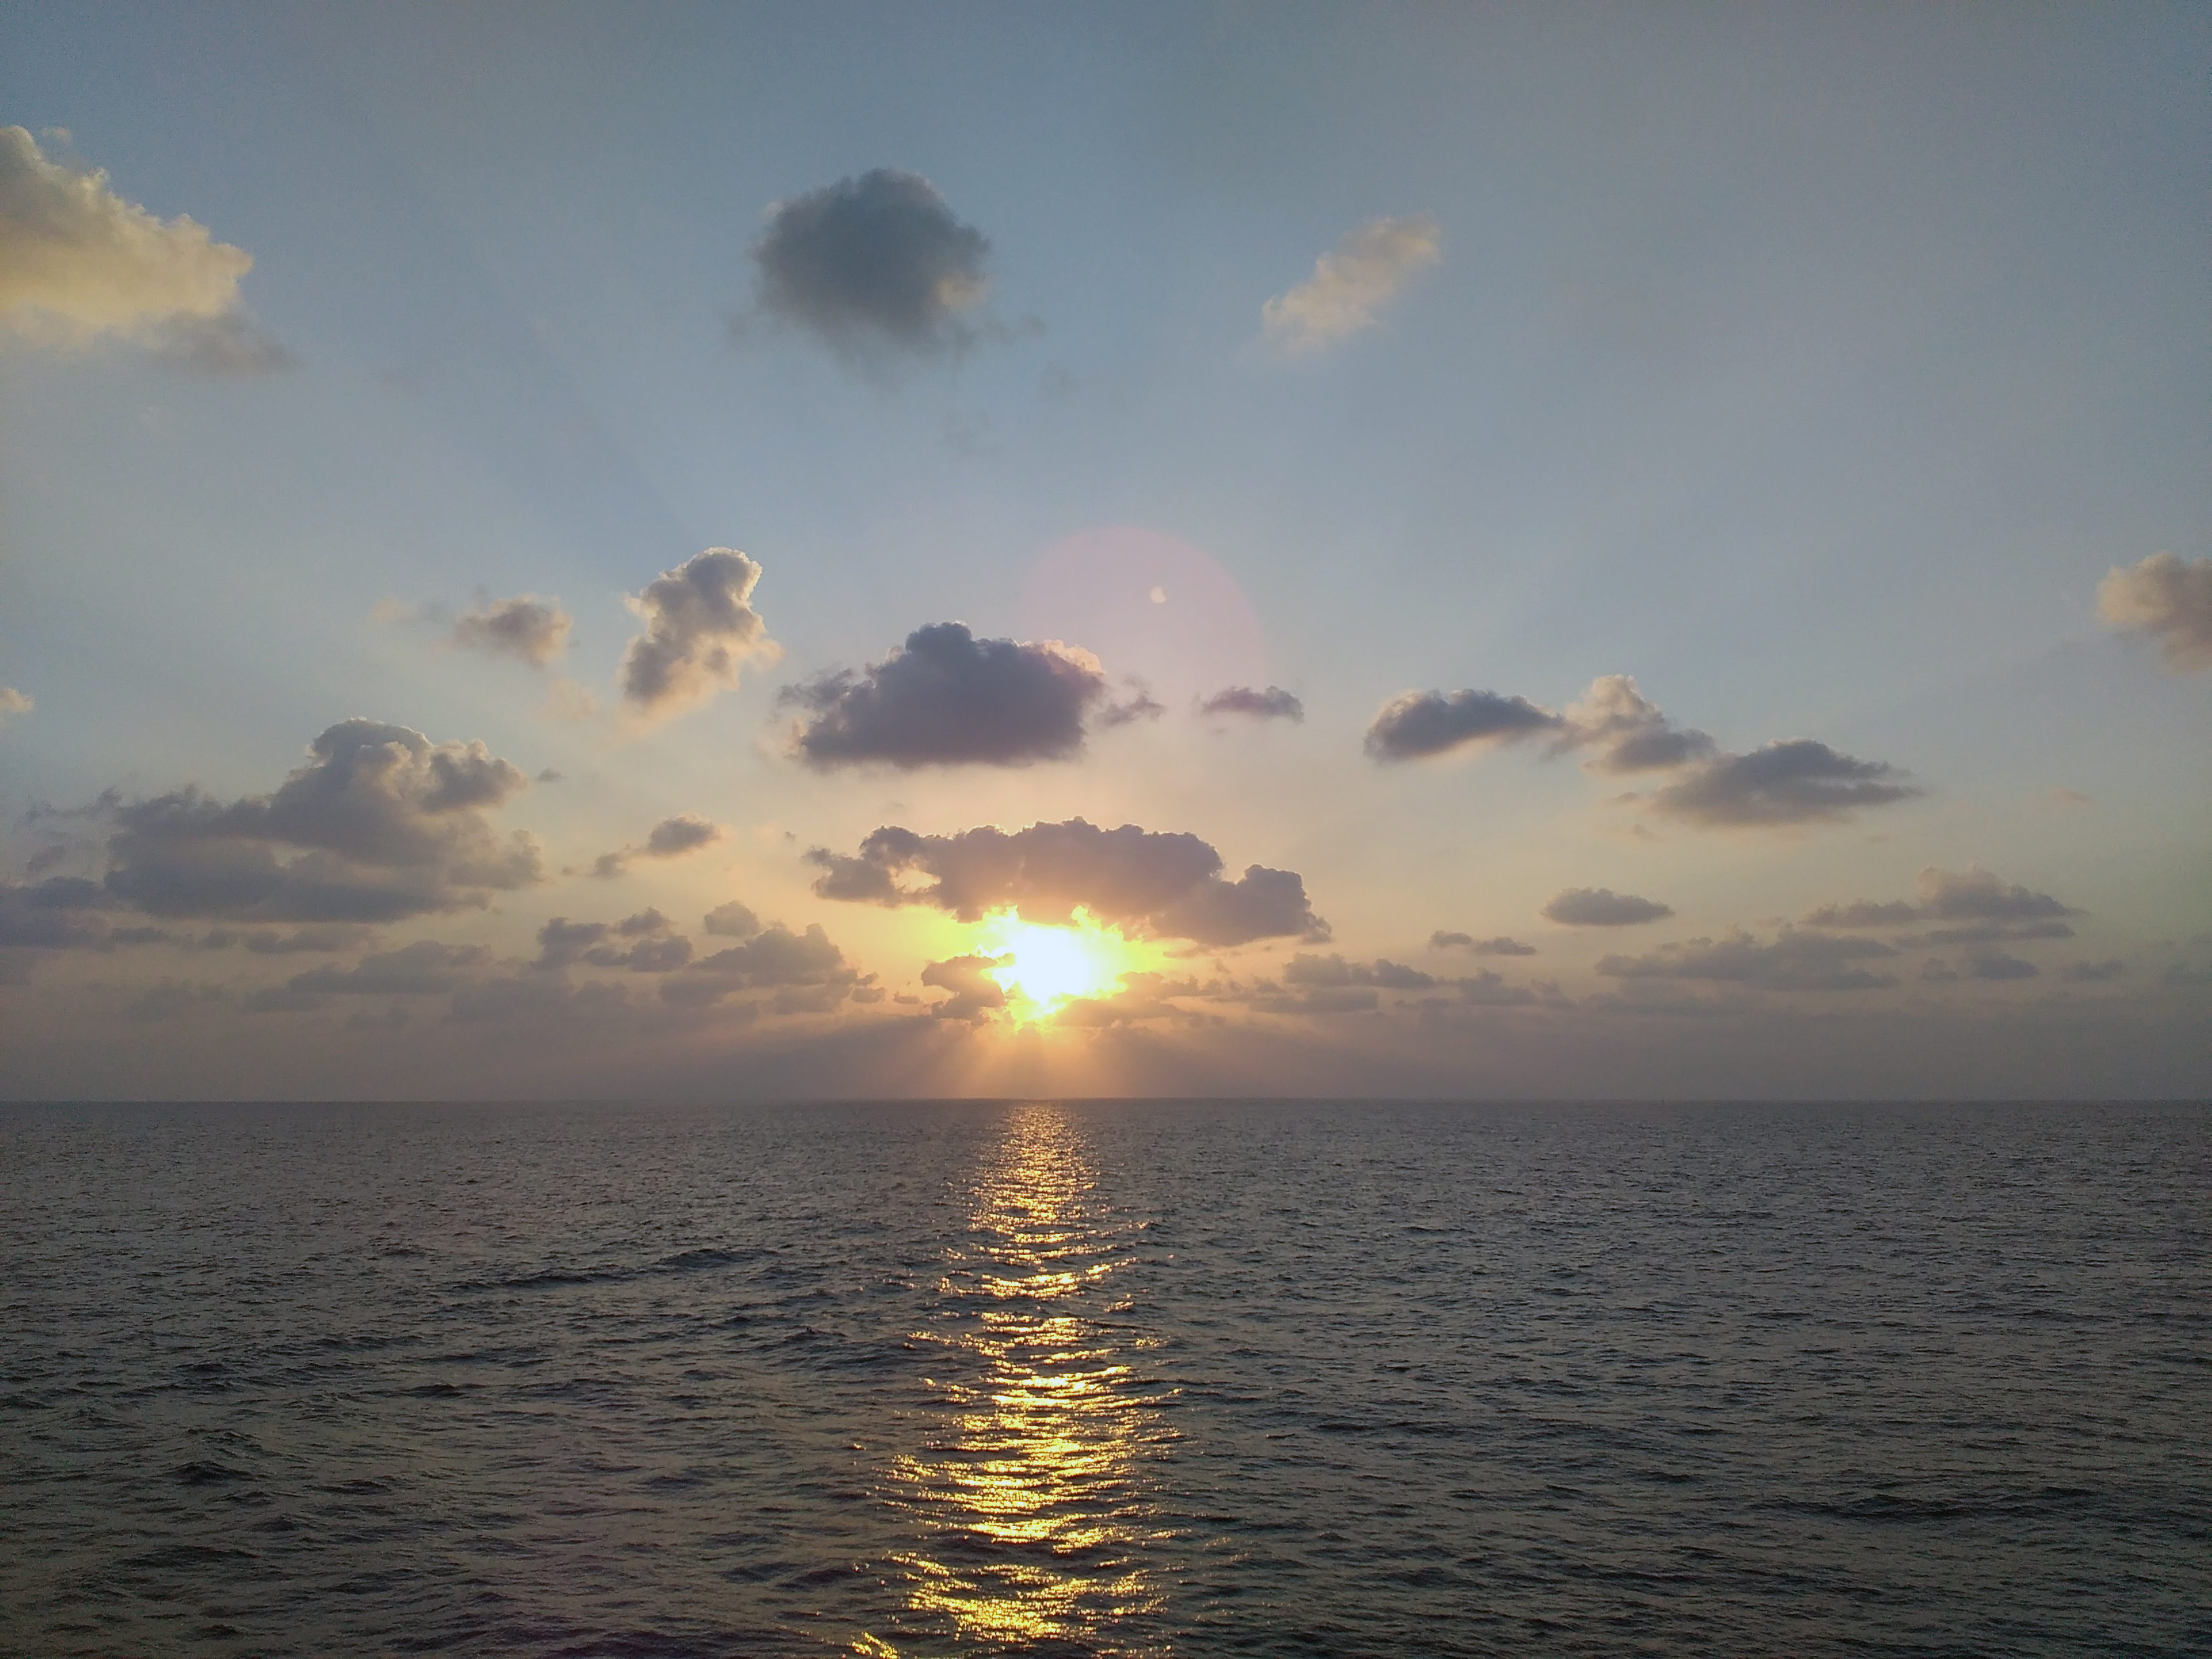 A sun set at midsea photo